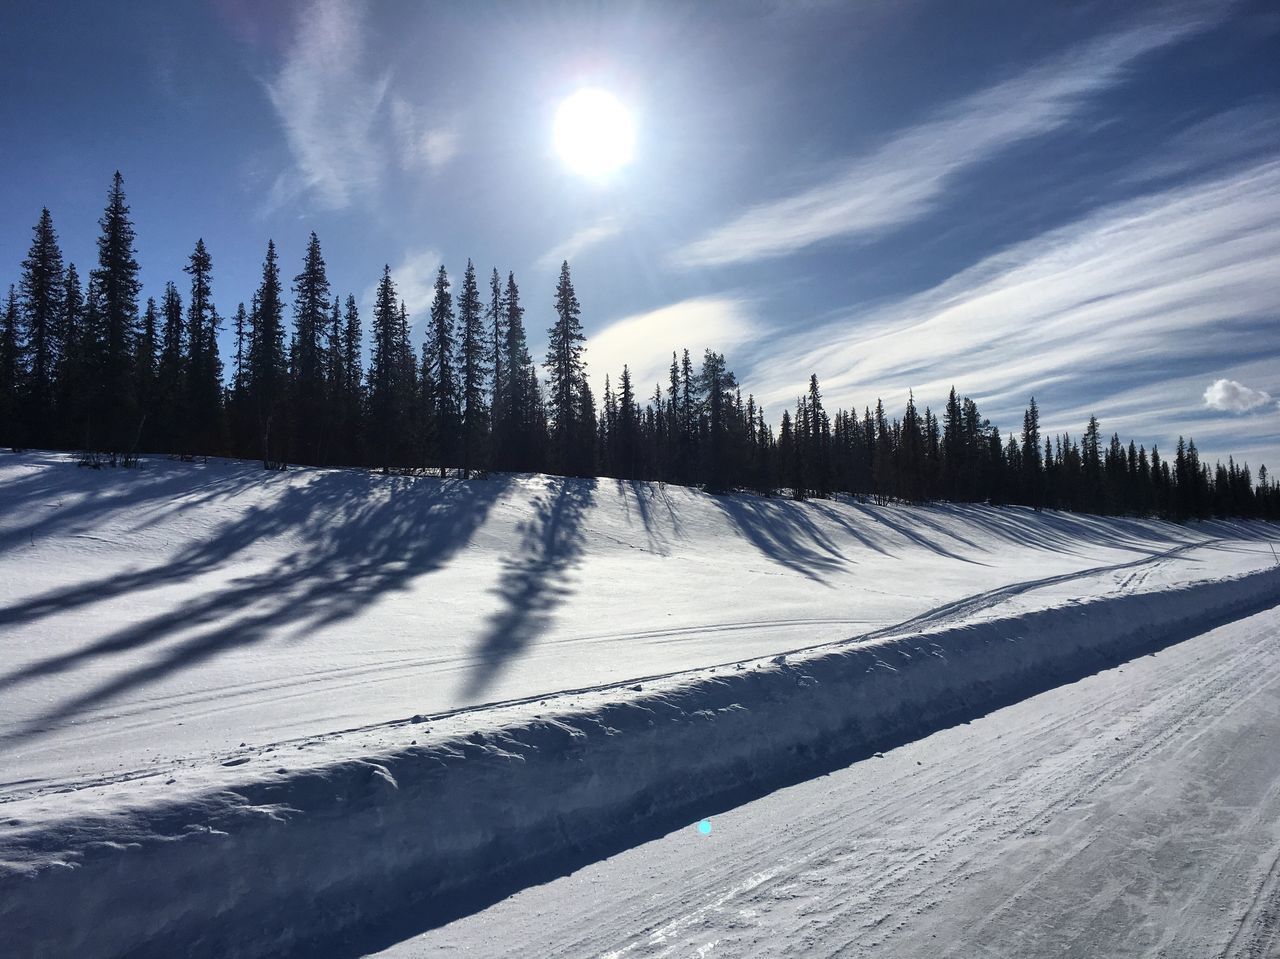 Snow Winter Cold Temperature Tree Nature Beauty In Nature Sunlight Tranquility Tranquil Scene Scenics Weather Landscape Sky Outdoors Non-urban Scene Ski Track Day No People Sunbeam Sun Sweden Sapmi Kiruna Kiruna Ortdrivaren Liselotte Wajstedt